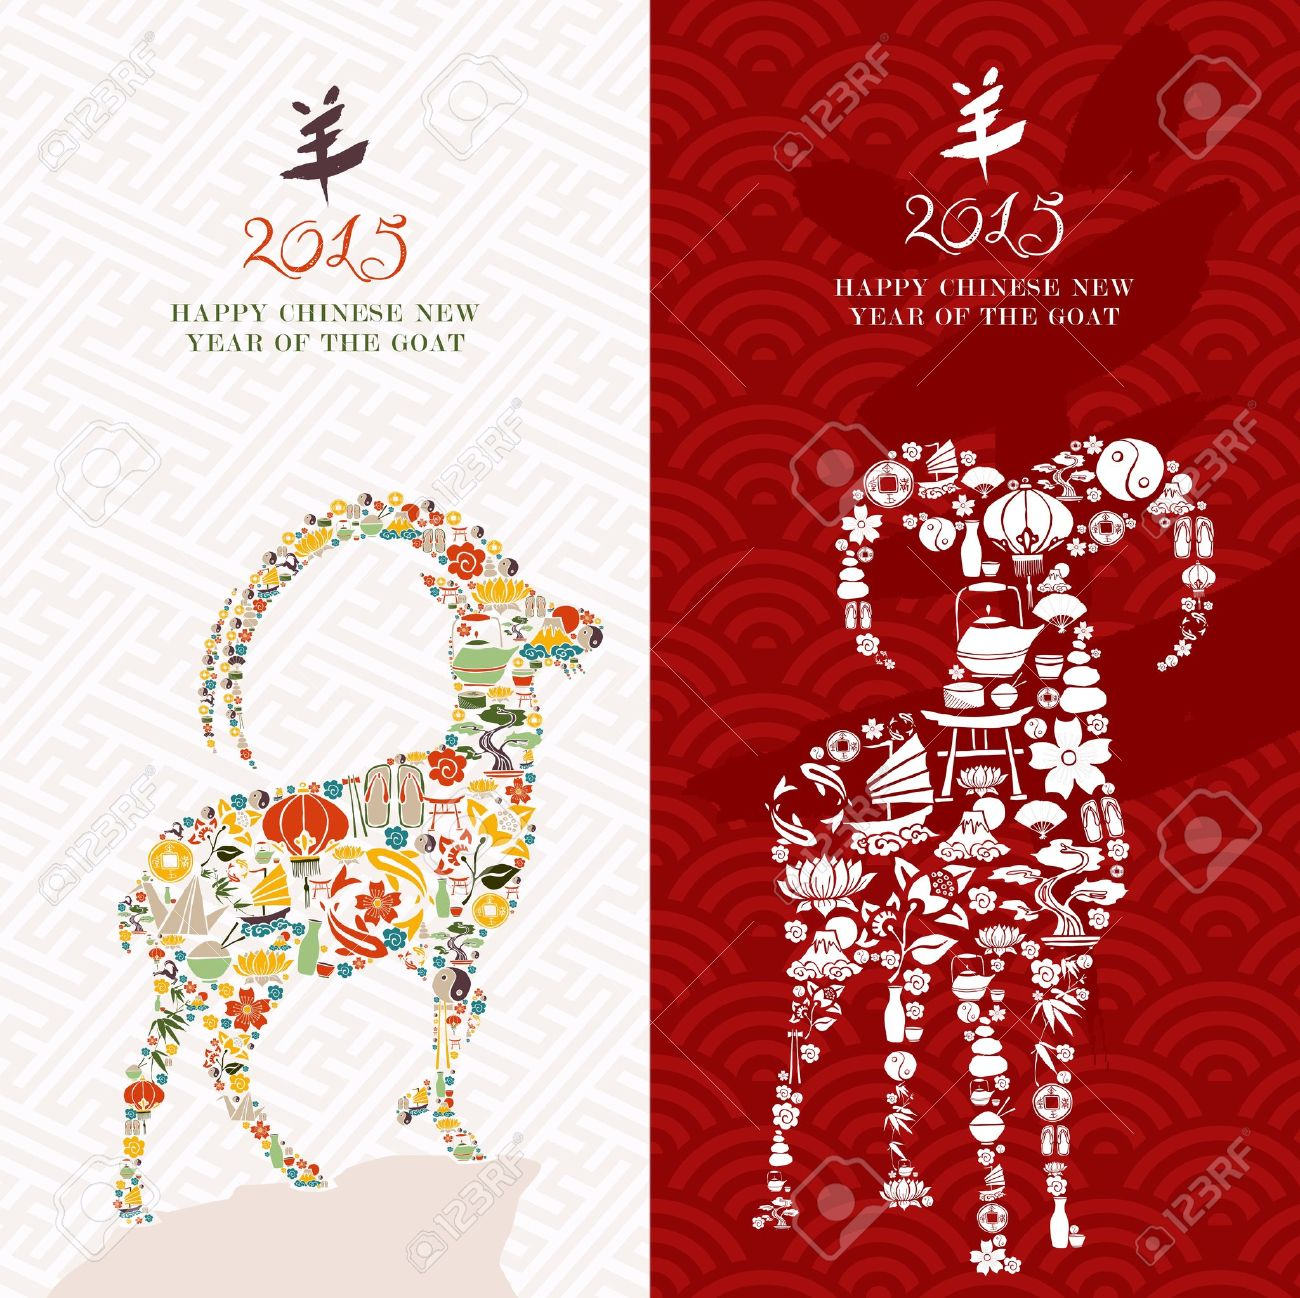 2015 chinese new year of the goat greeting cards set with oriental